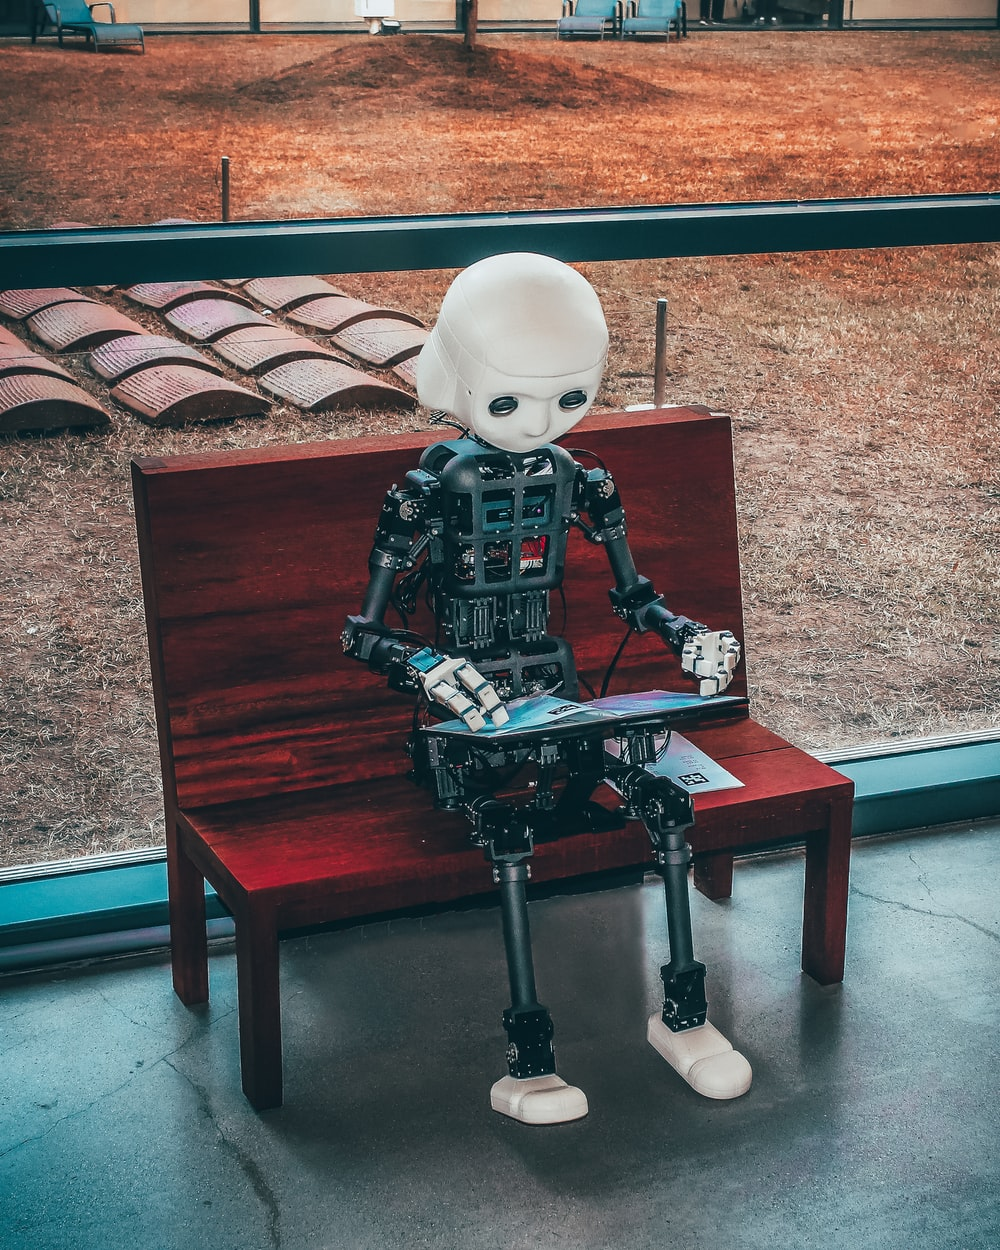 black and white robot toy on red wooden table